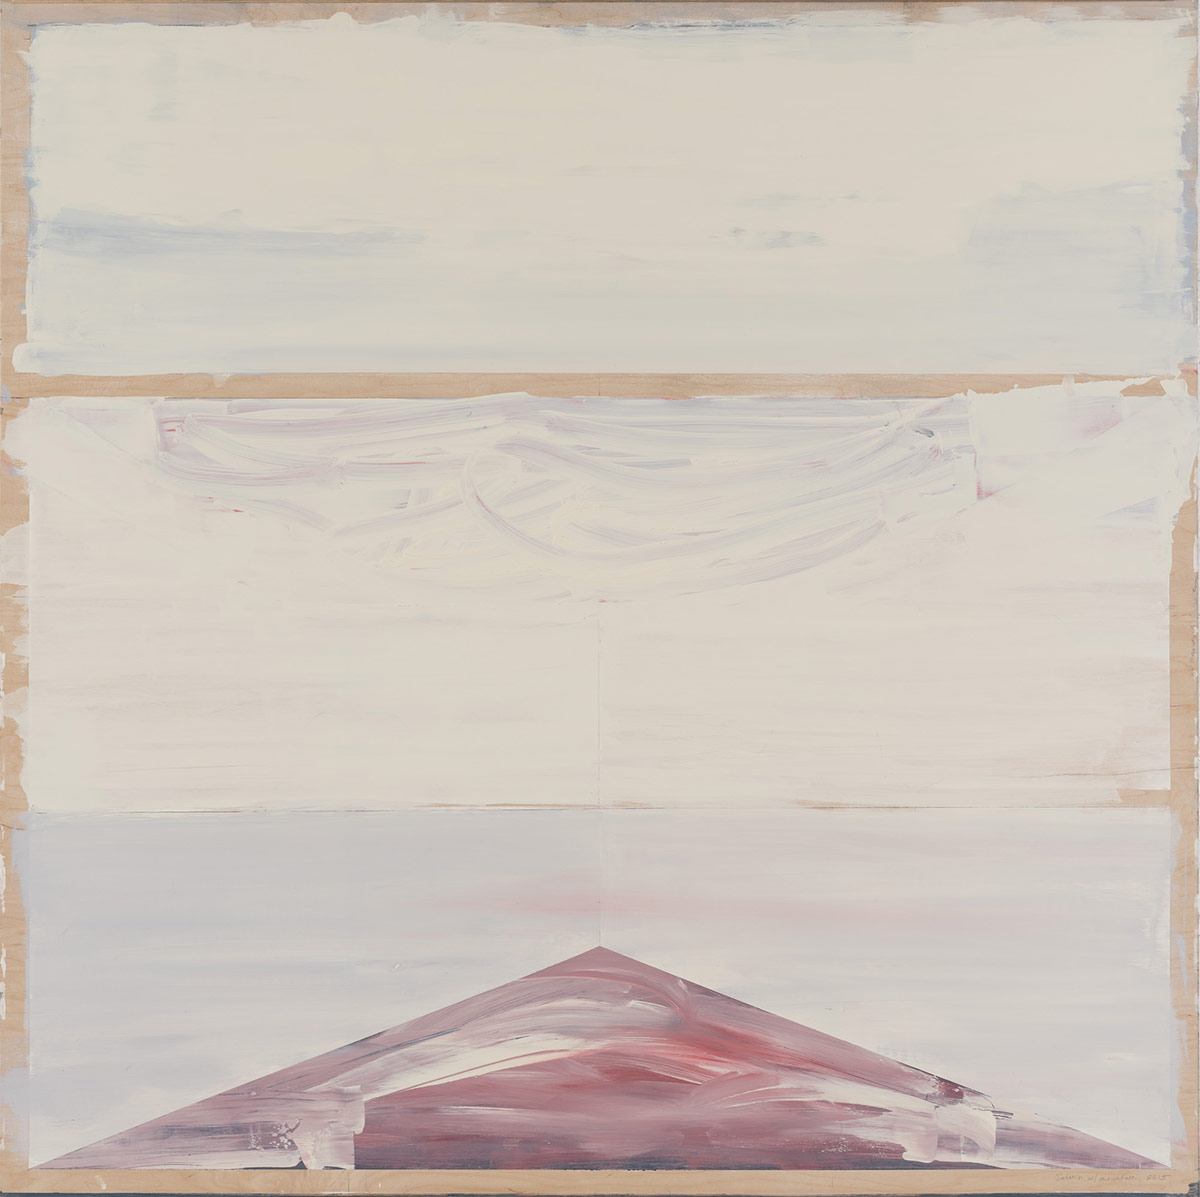 """Landscape with road,  2014. Acrylic and acrylic polymer on wood panel. 48""""x48"""""""